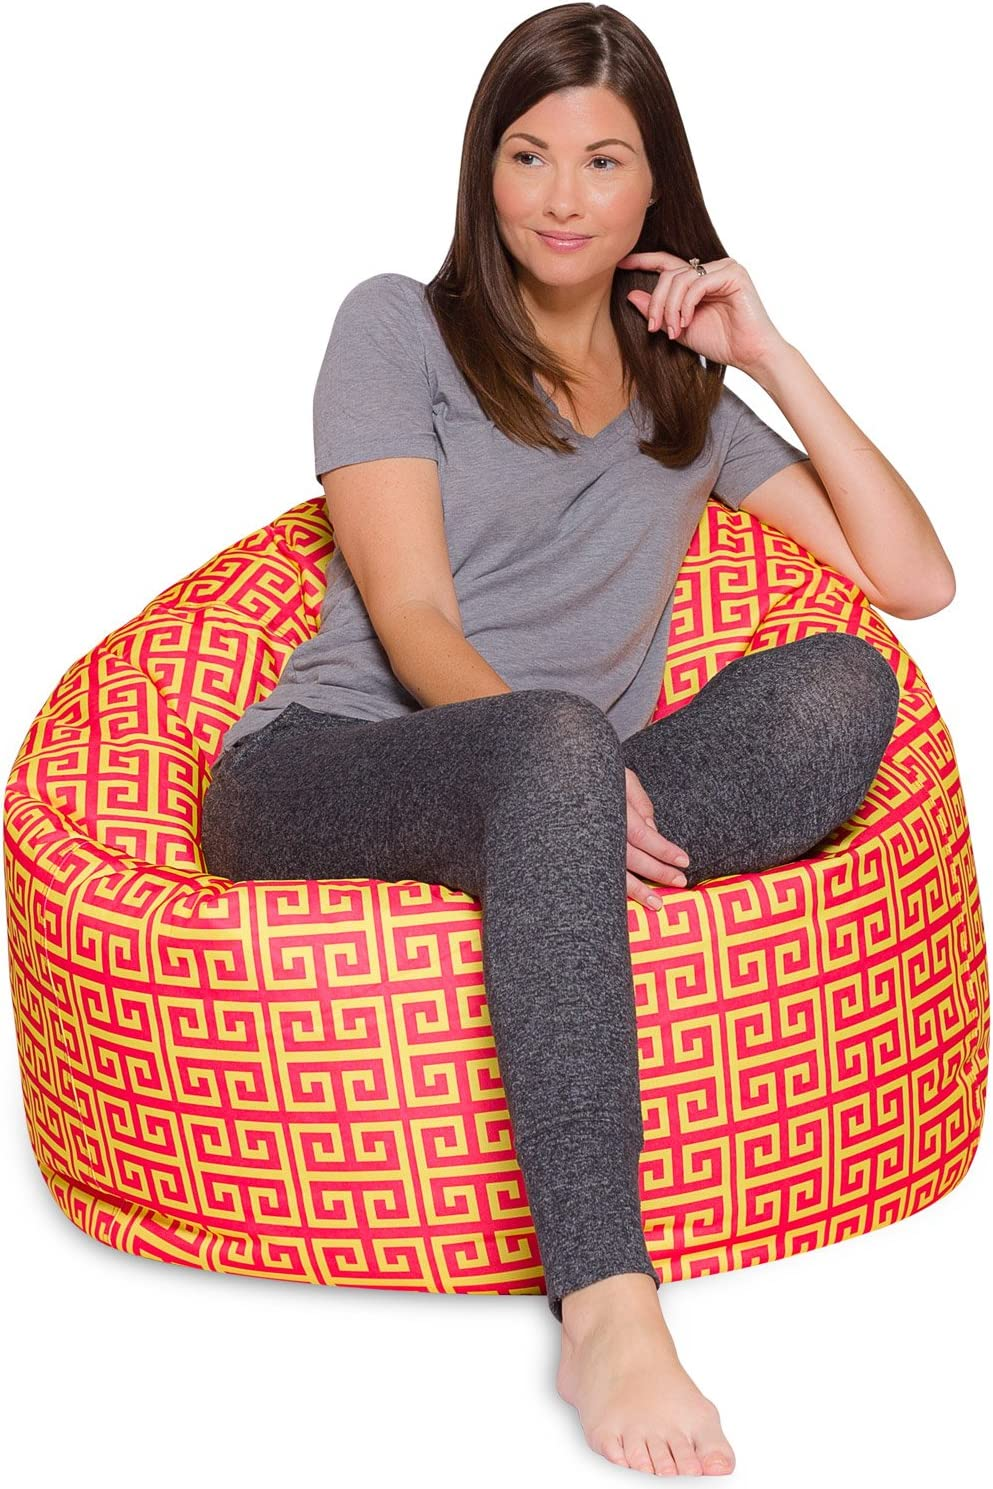 Posh Beanbags Big Comfy Bean Bag Posh Large Beanbag Chairs with Removable Cover for Kids, Teens and Adults Polyester Cloth Puff Sack Lounger Furniture for All Ages, 48in Extra, Scrolls Red and Yellow